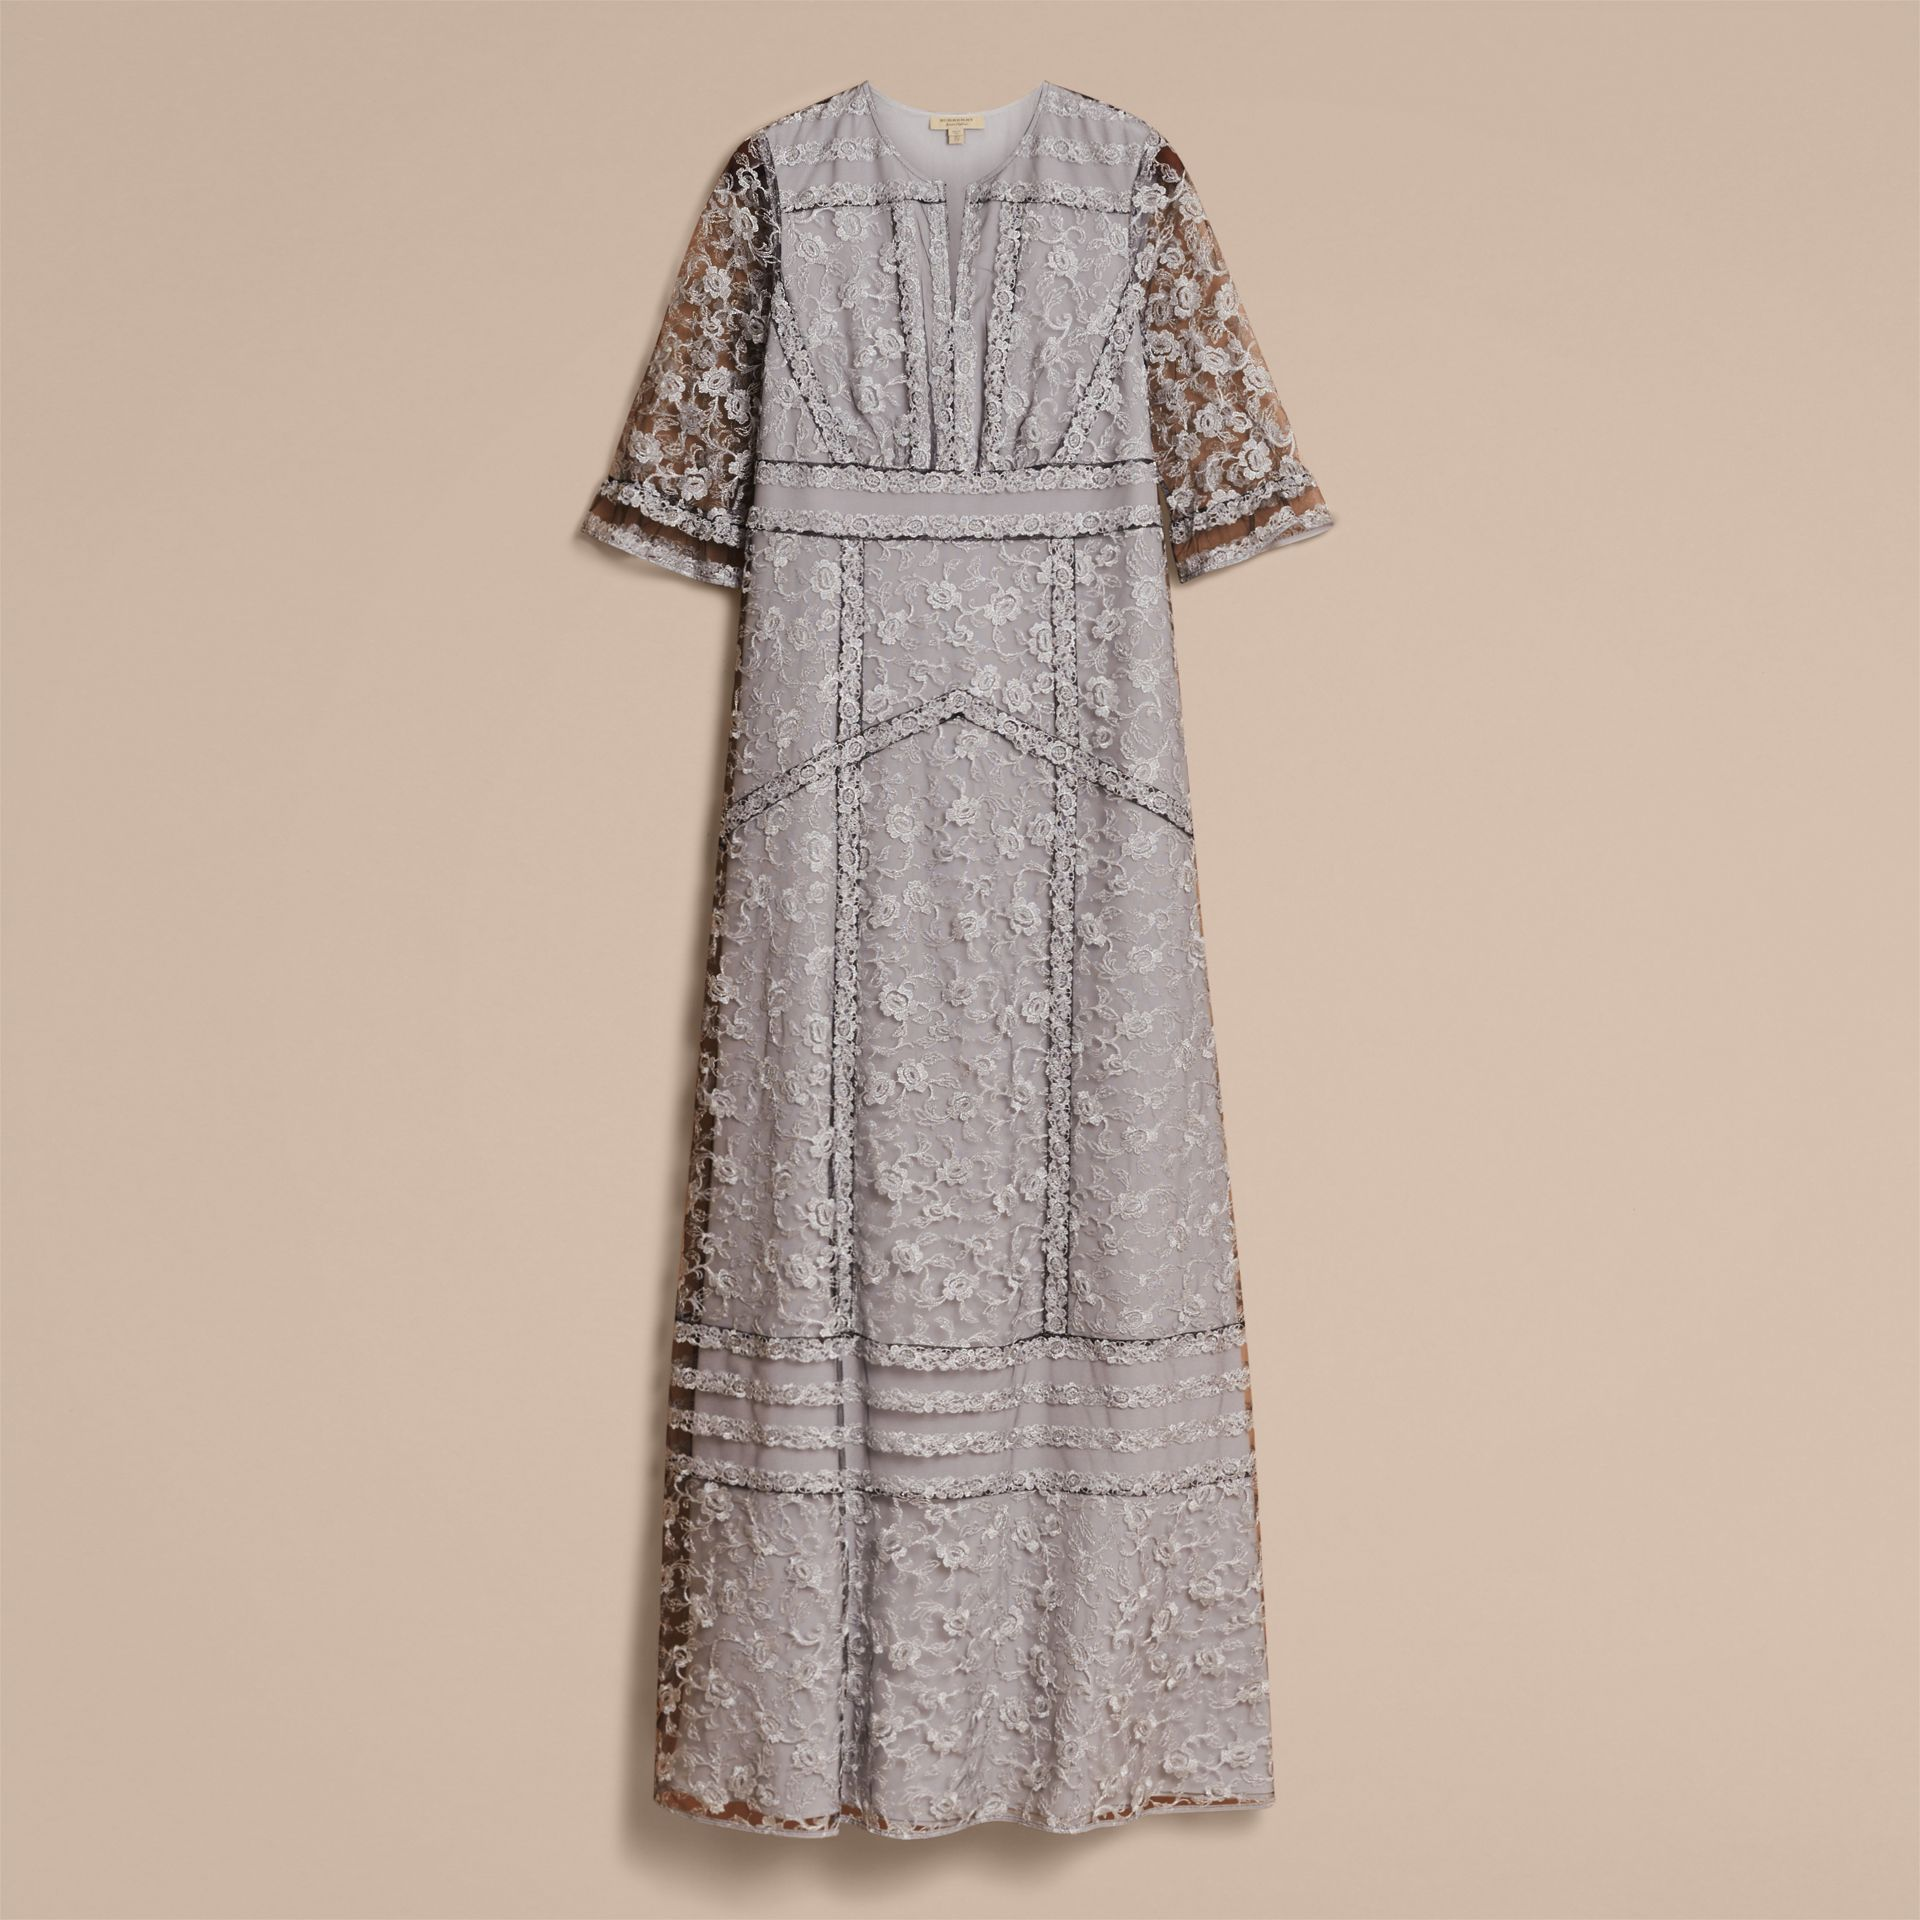 Floral Lace Tulle Dress in Silver - Women | Burberry - gallery image 4